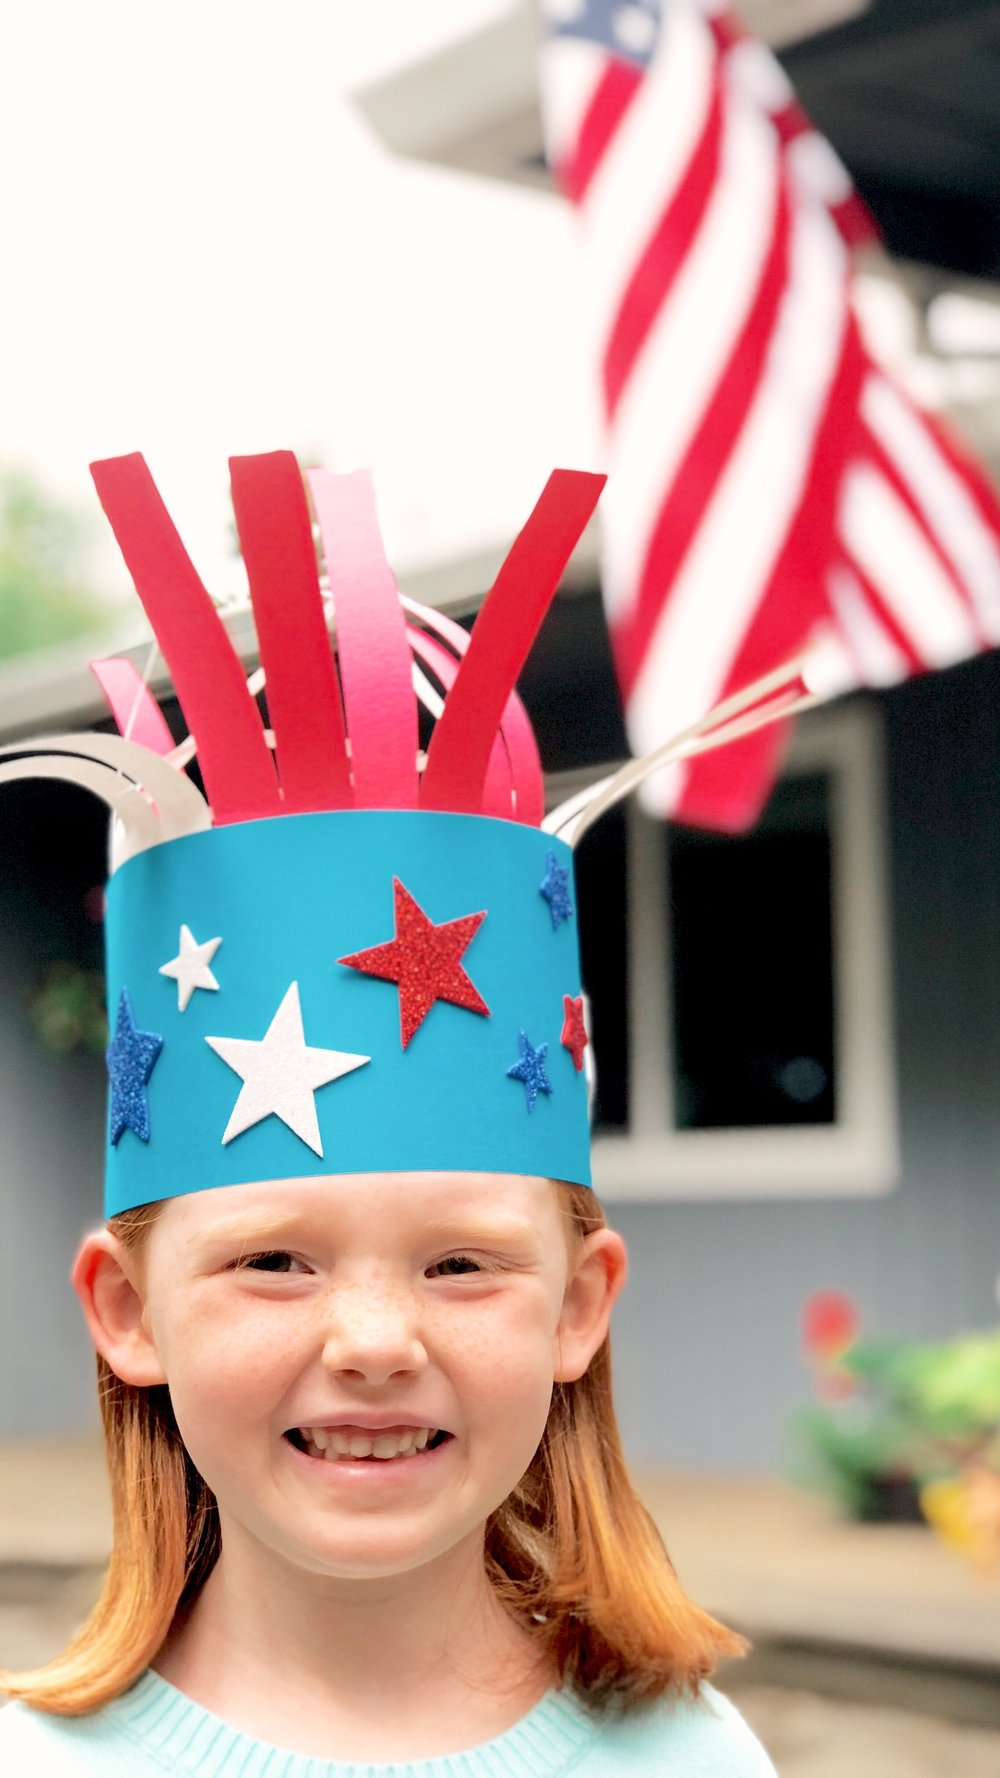 Patriotic Parade Hat - Use two tape dots on each end of the blue paper to form the base of your hat. After you add the foam stars, glue on some of the star confetti pieces to make your hat even more festive!